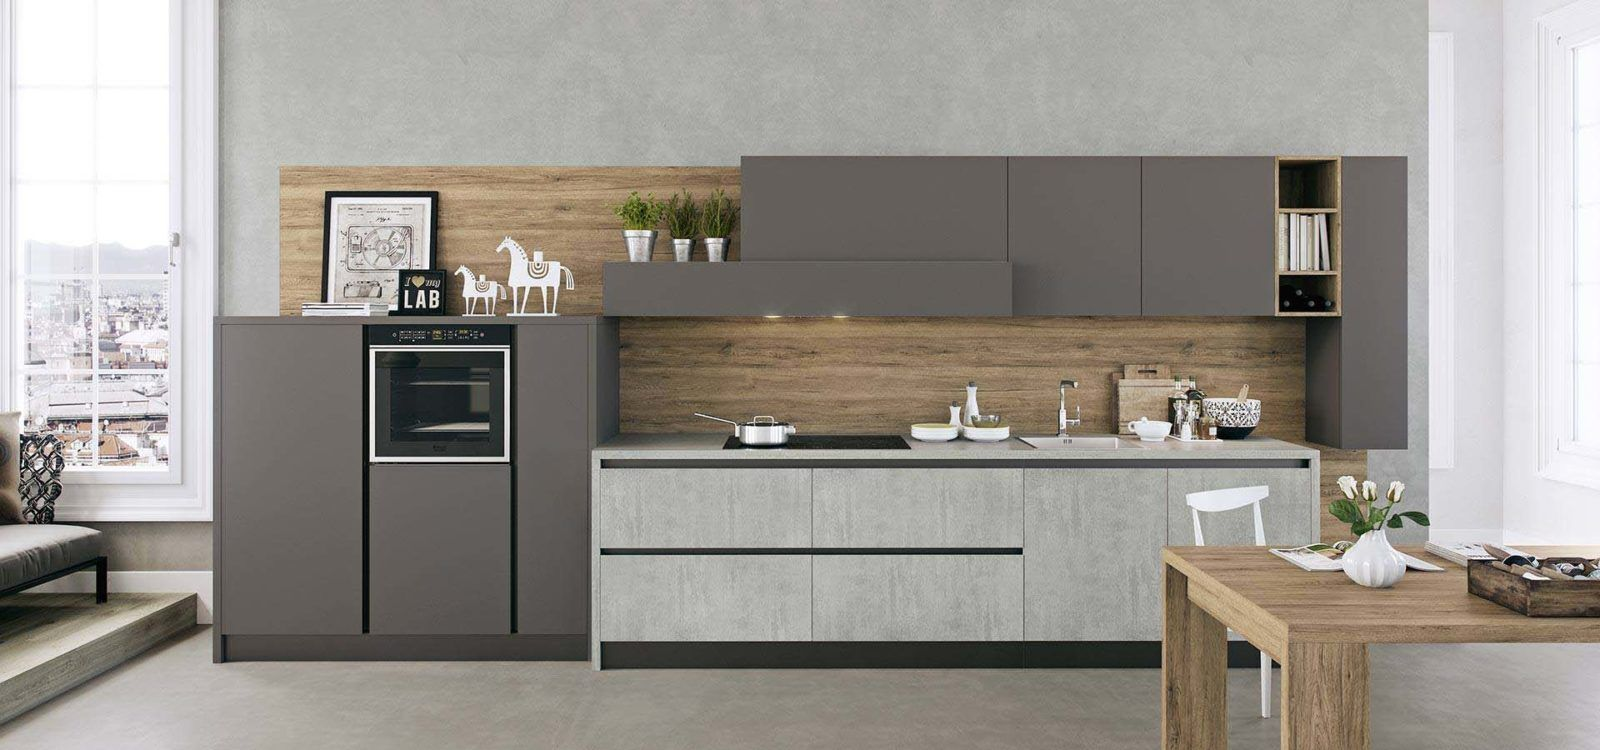 Cucina Moderna Lineare-2 | Living in the Kitchen ...